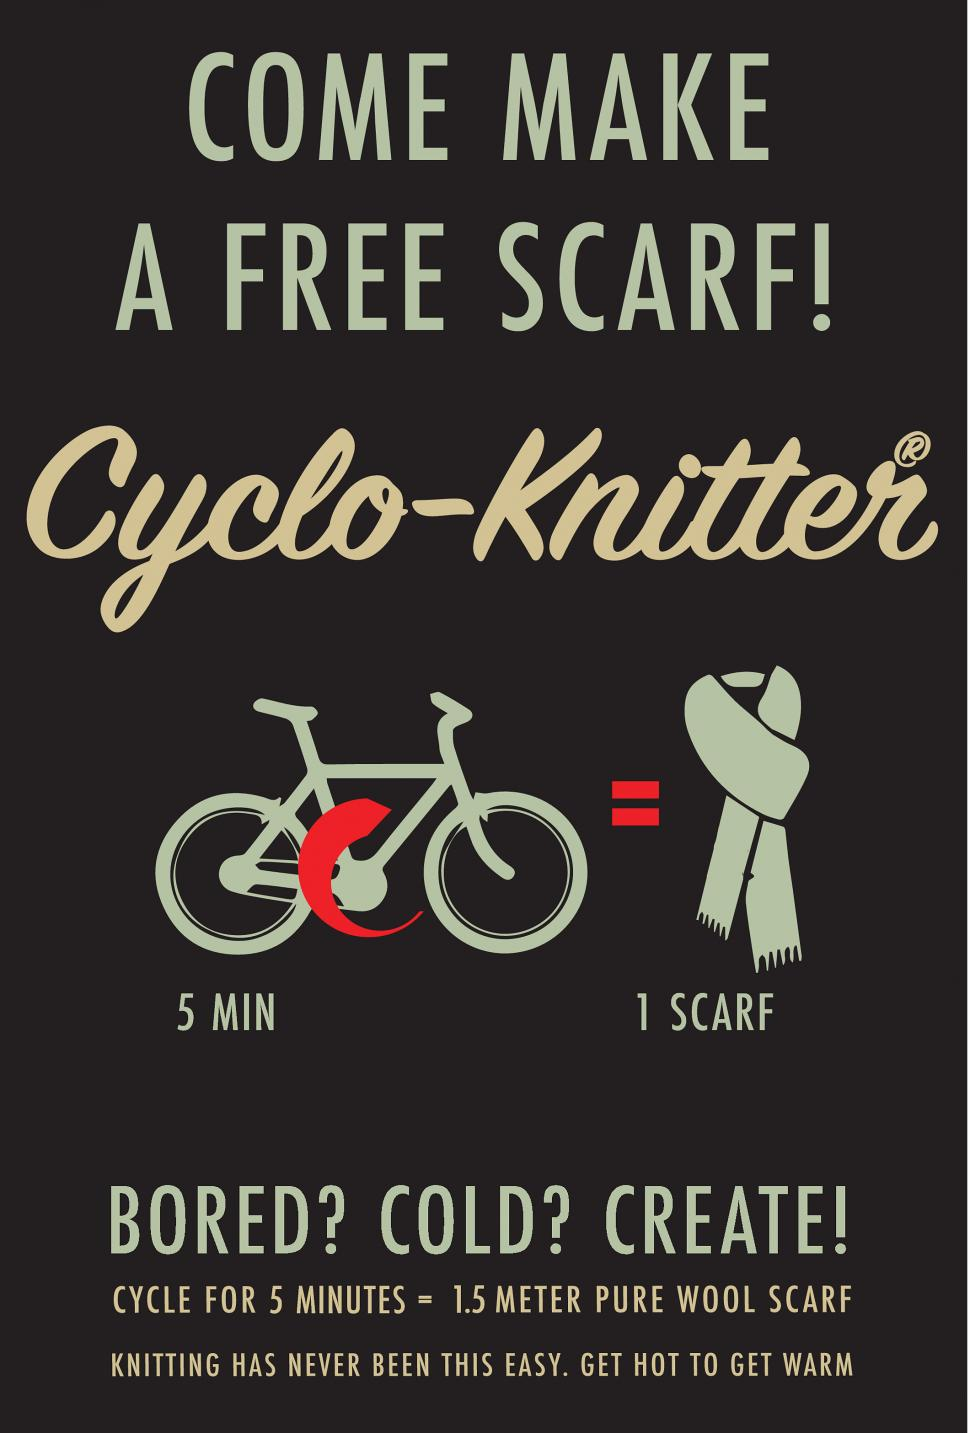 Cyclo-Knitter graphic